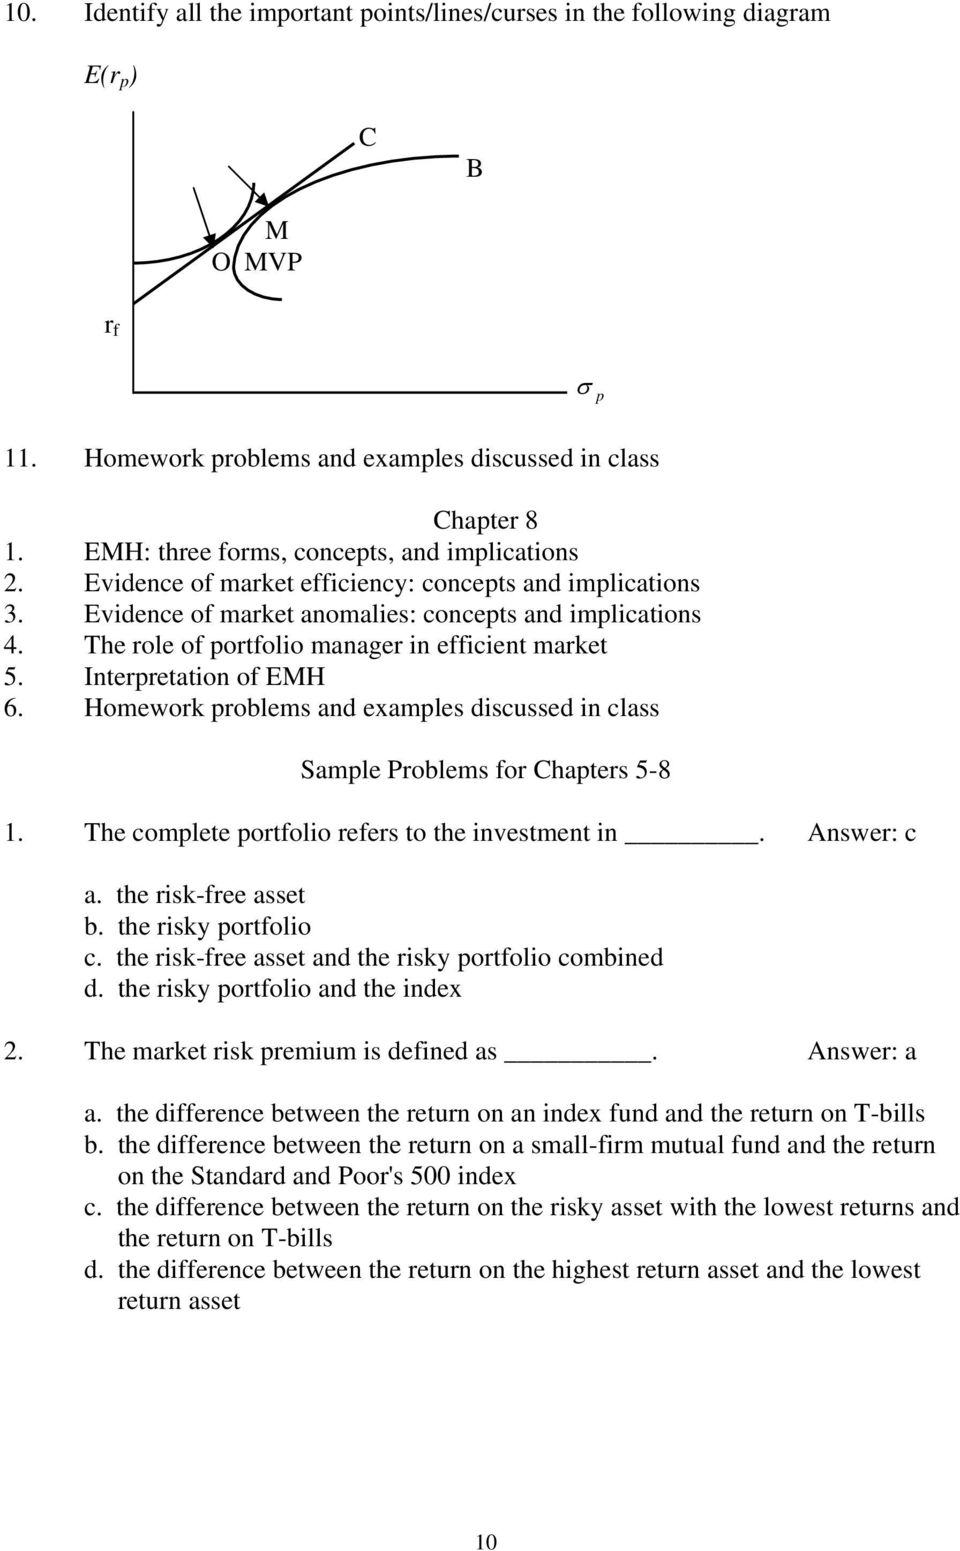 The role of portfolio manager in efficient market 5. Interpretation of EMH 6. Homework problems and examples discussed in class Sample Problems for Chapters 5-8 1.